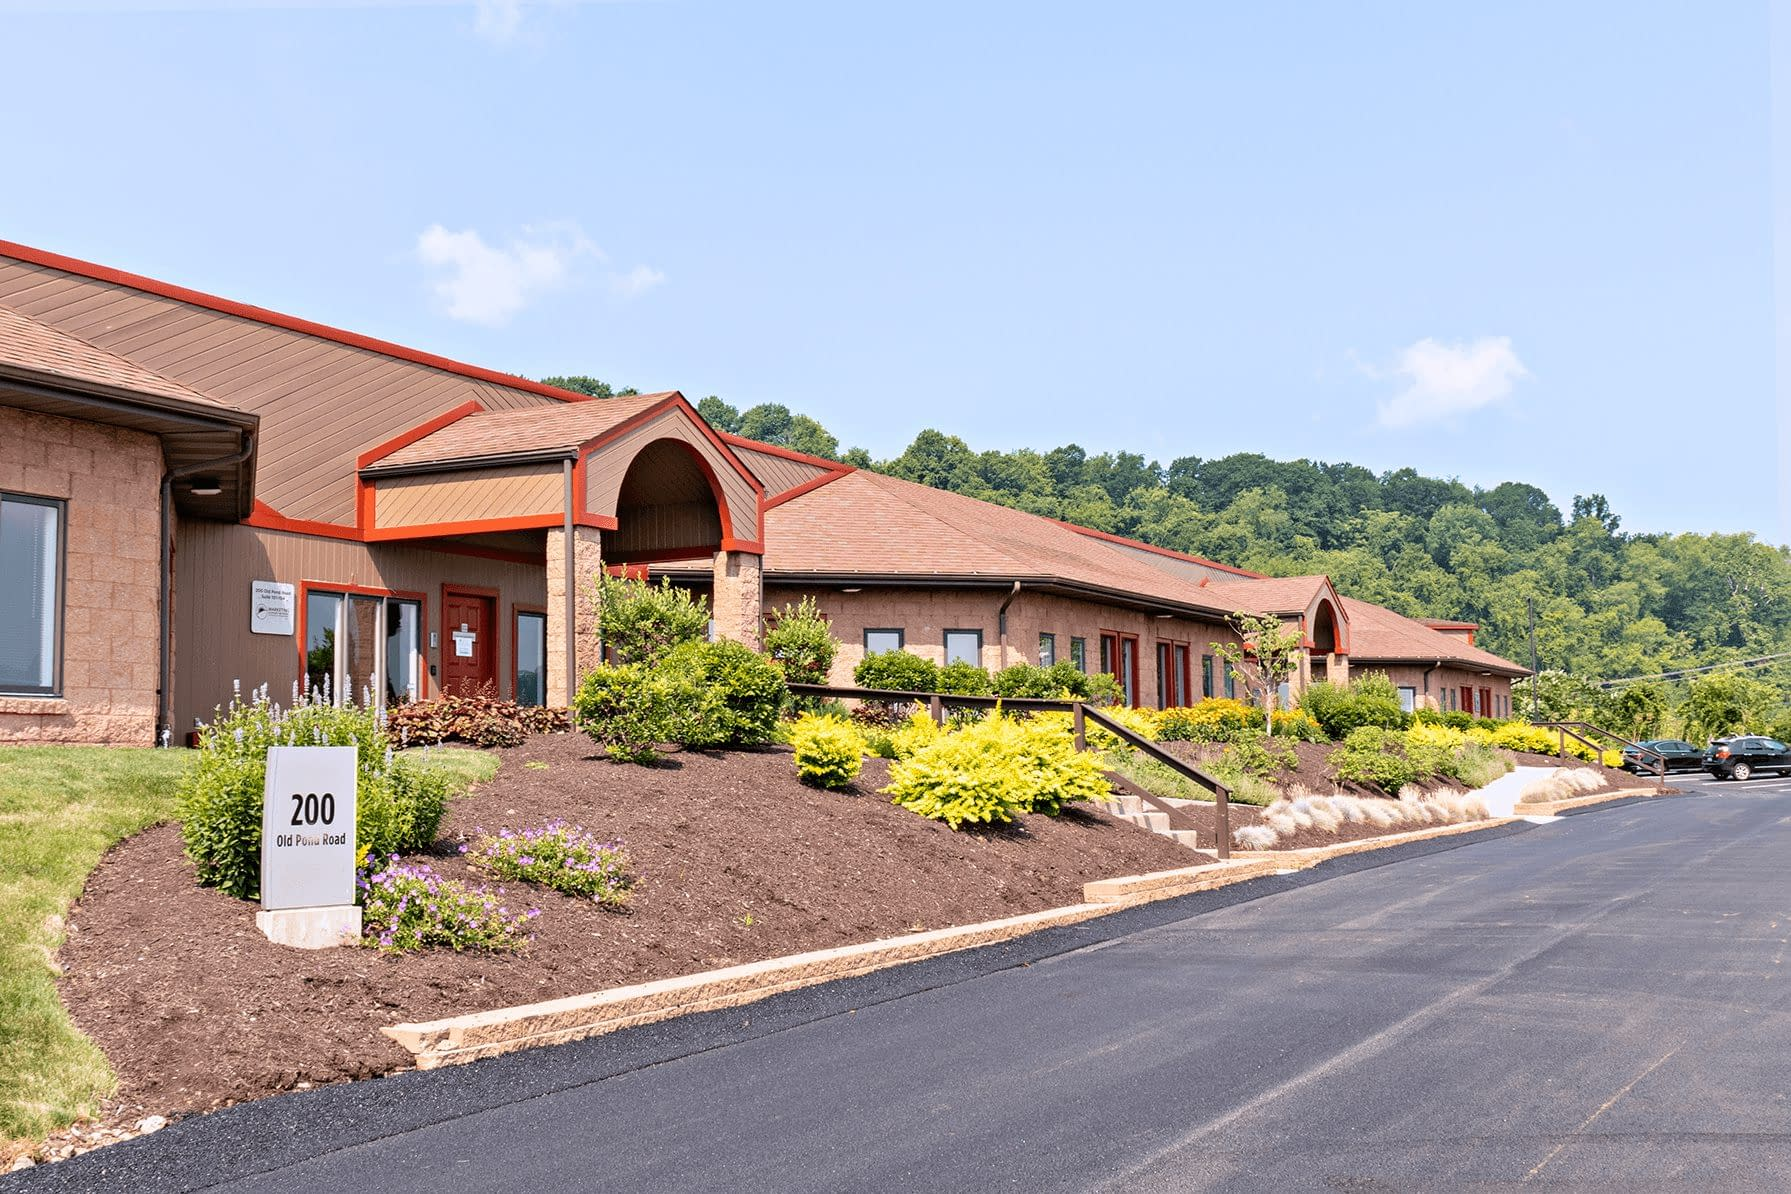 Building at Abele Business Park with newly paved street and well-kept shrubbery